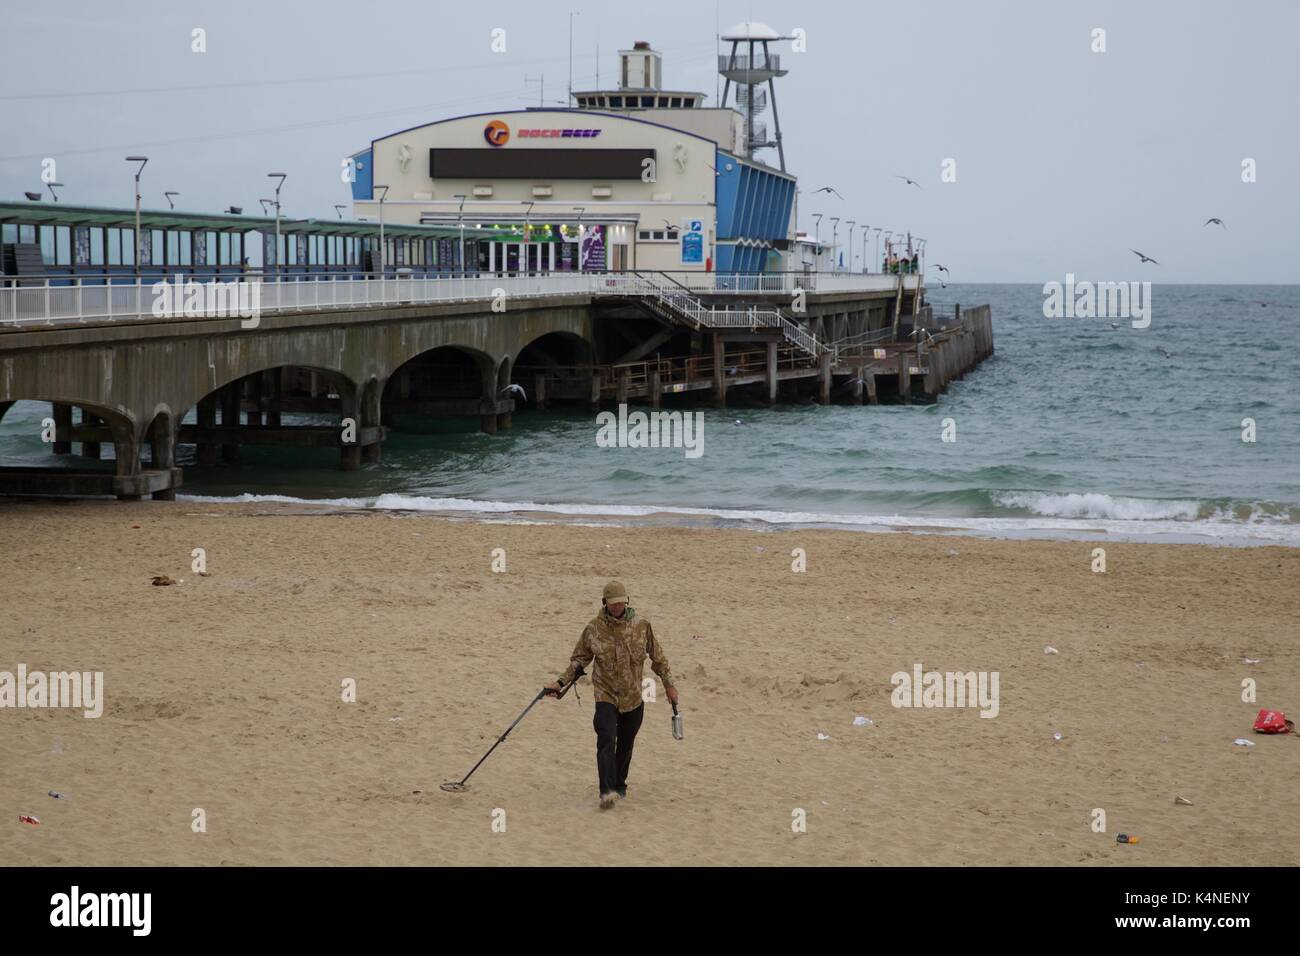 Man using a metal detector on Bournemouth beach with the Bournemouth pier in the background - Stock Image